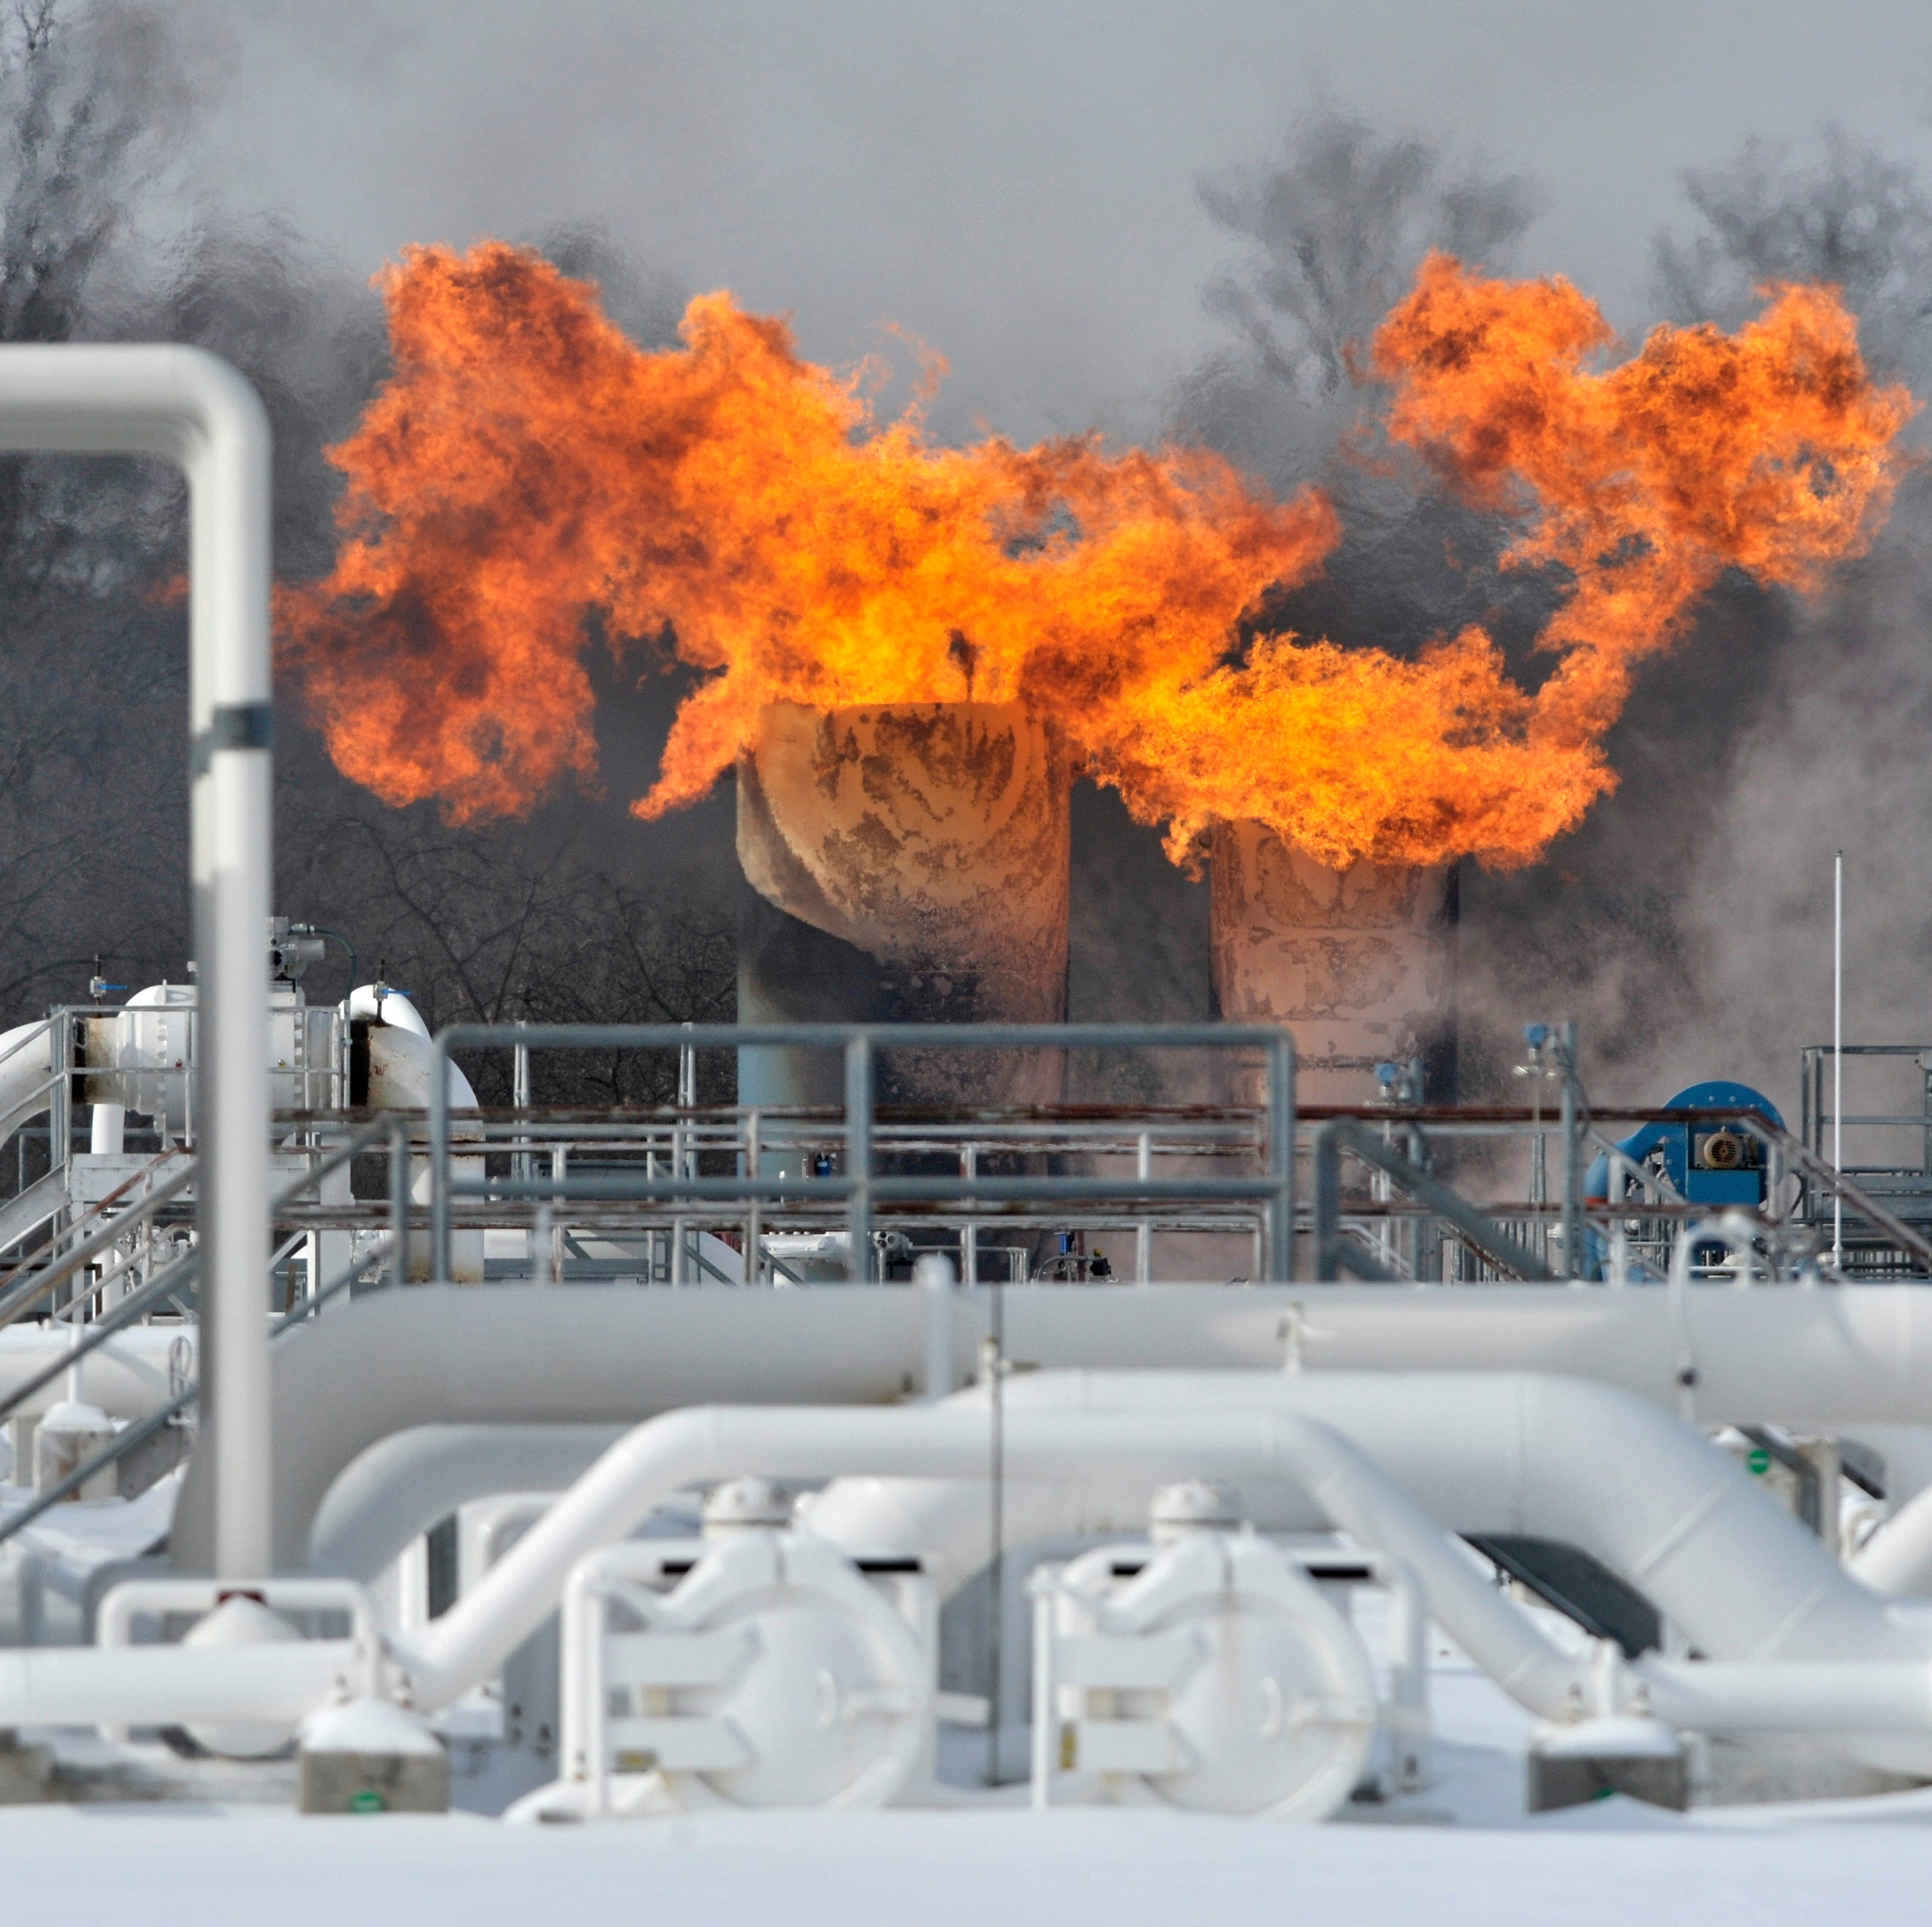 Consumers CEO: Two natural gas plants still down after Jan. 30 fire